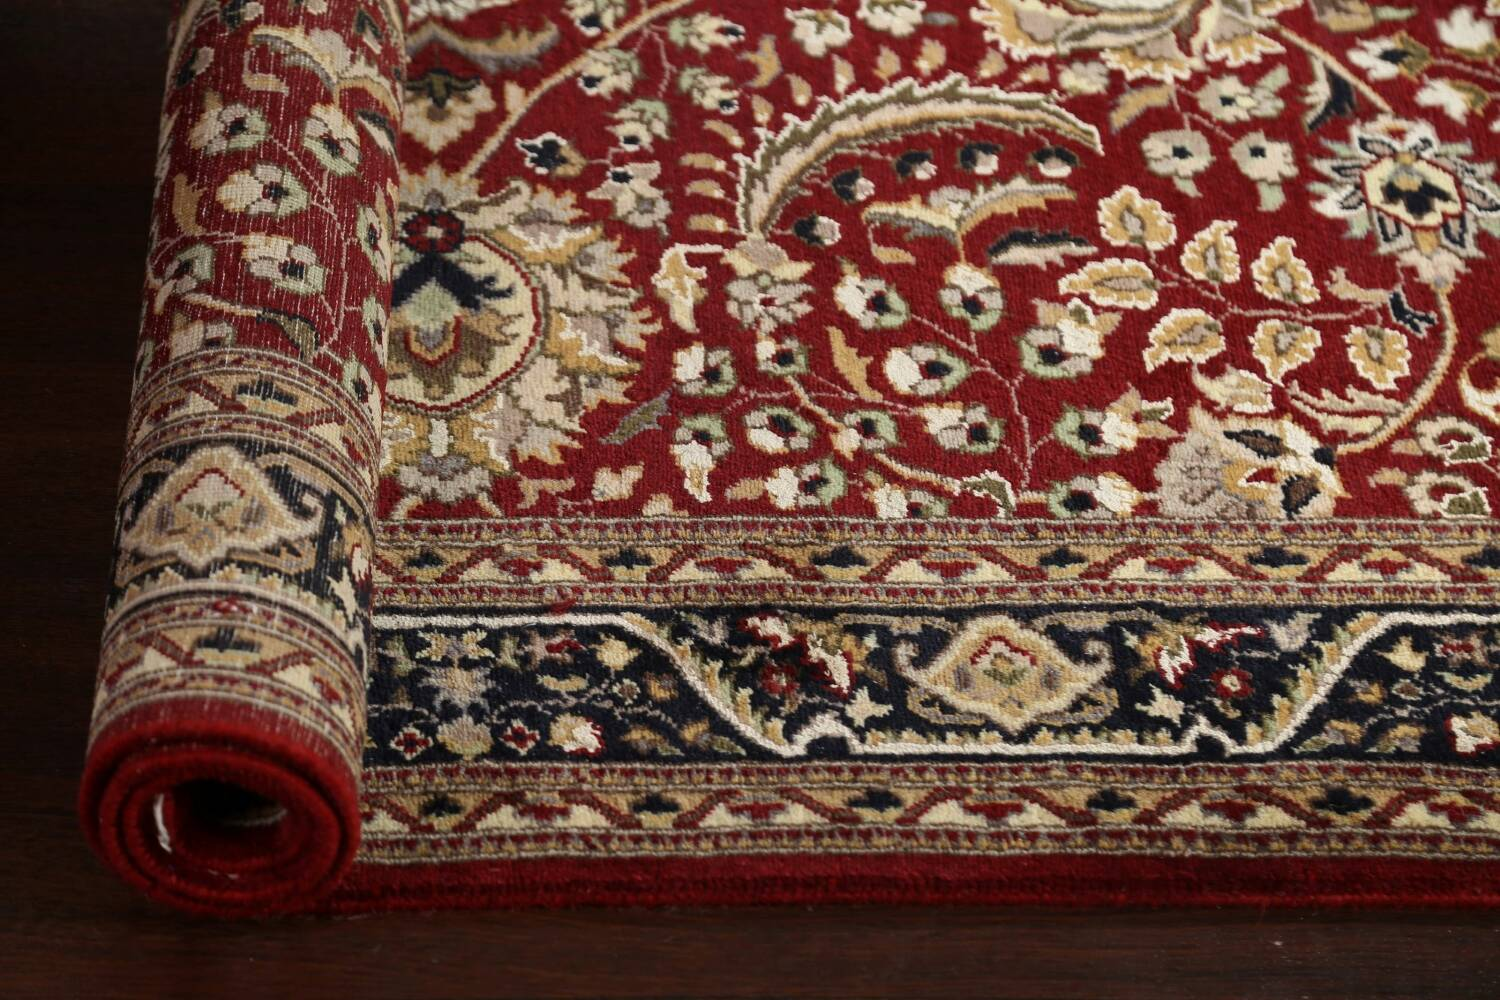 Vegetable Dye Aubusson Hand-Knotted Area Rug 4x6 image 14